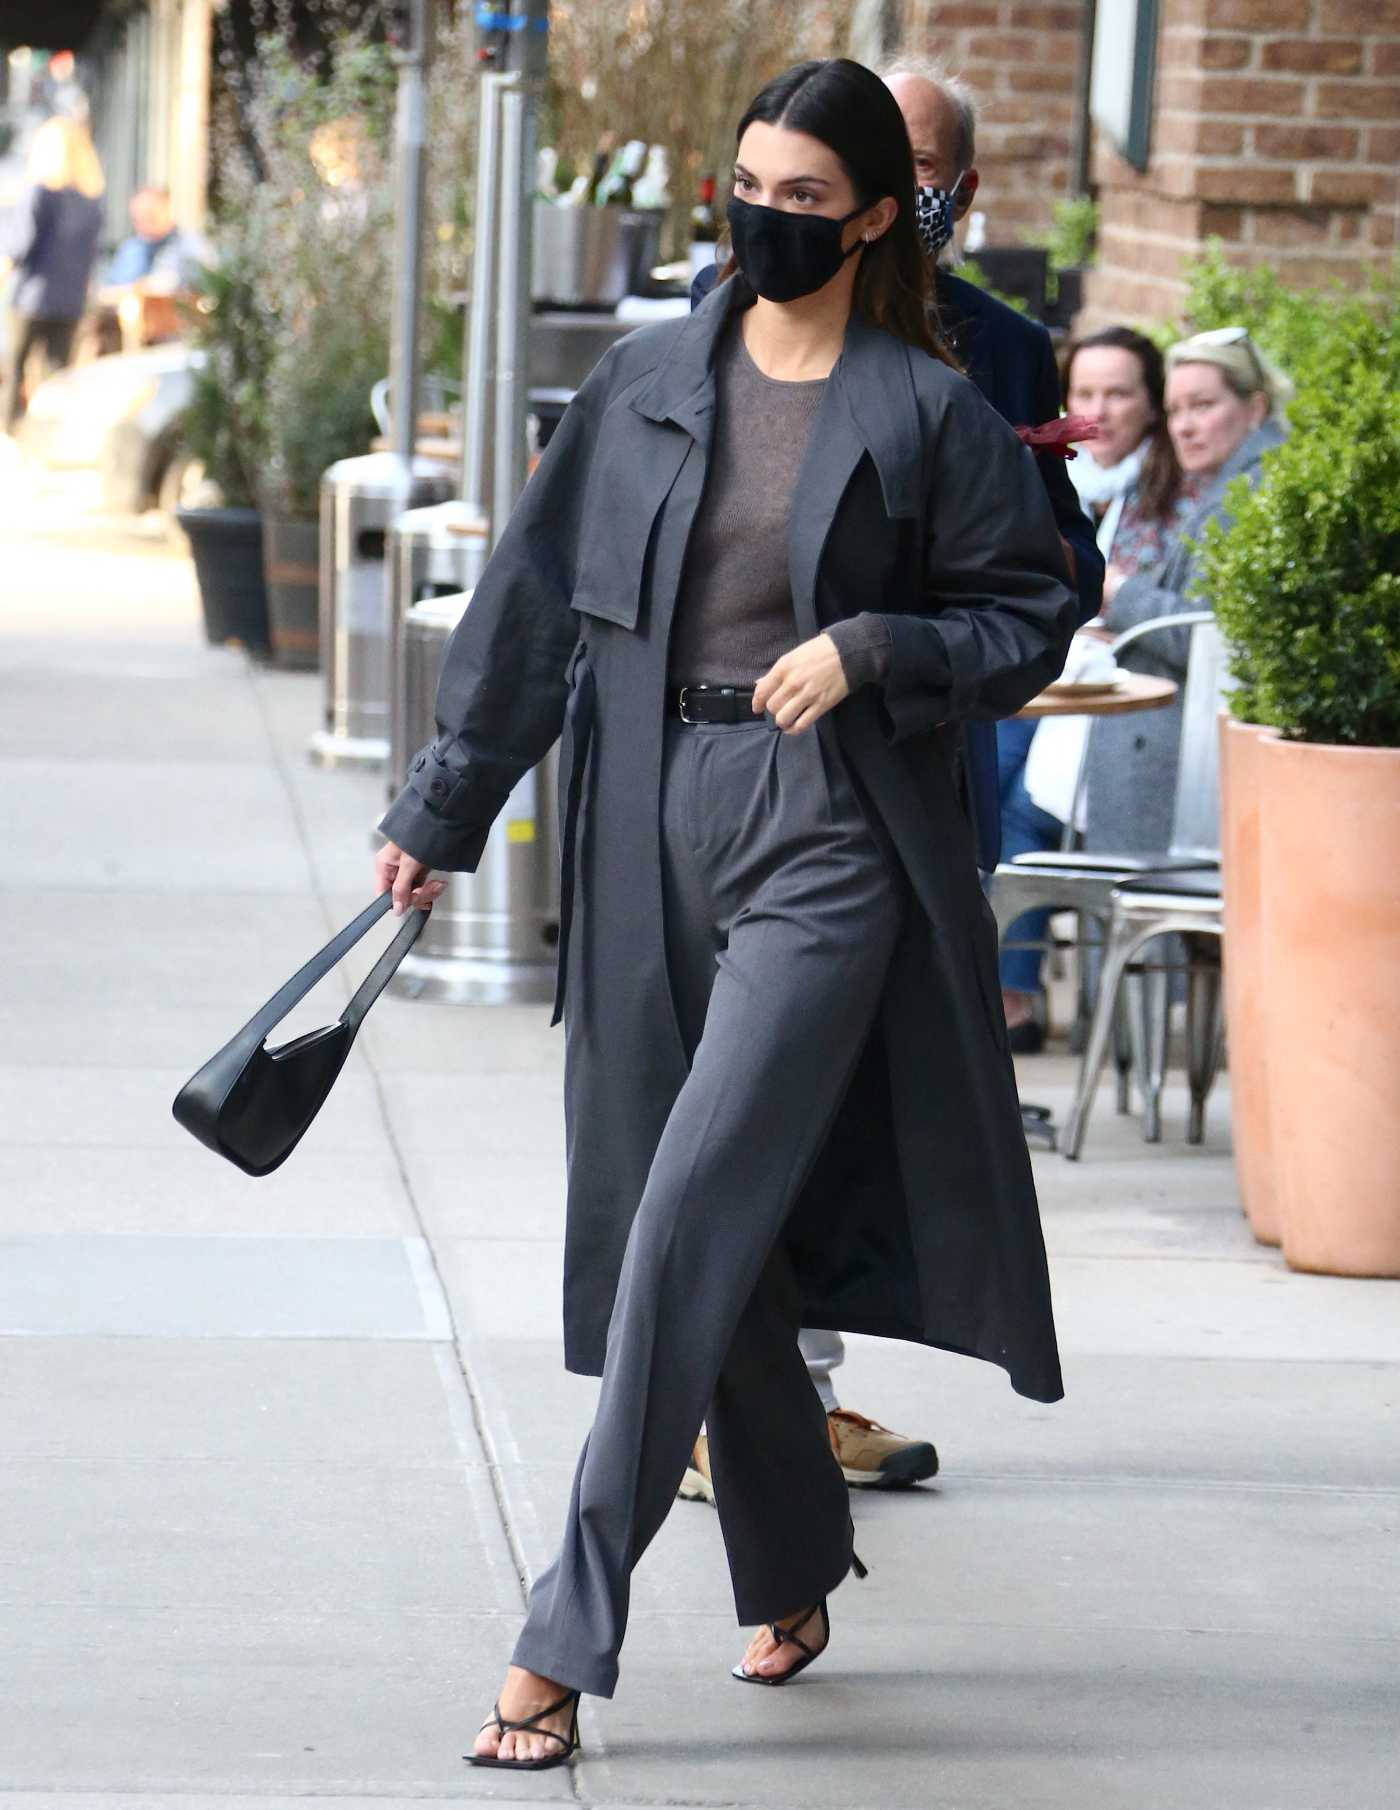 Kendall Jenner in a Black Trench Coat Leaves Her Hotel in Tribeca, New York 04/27/2021